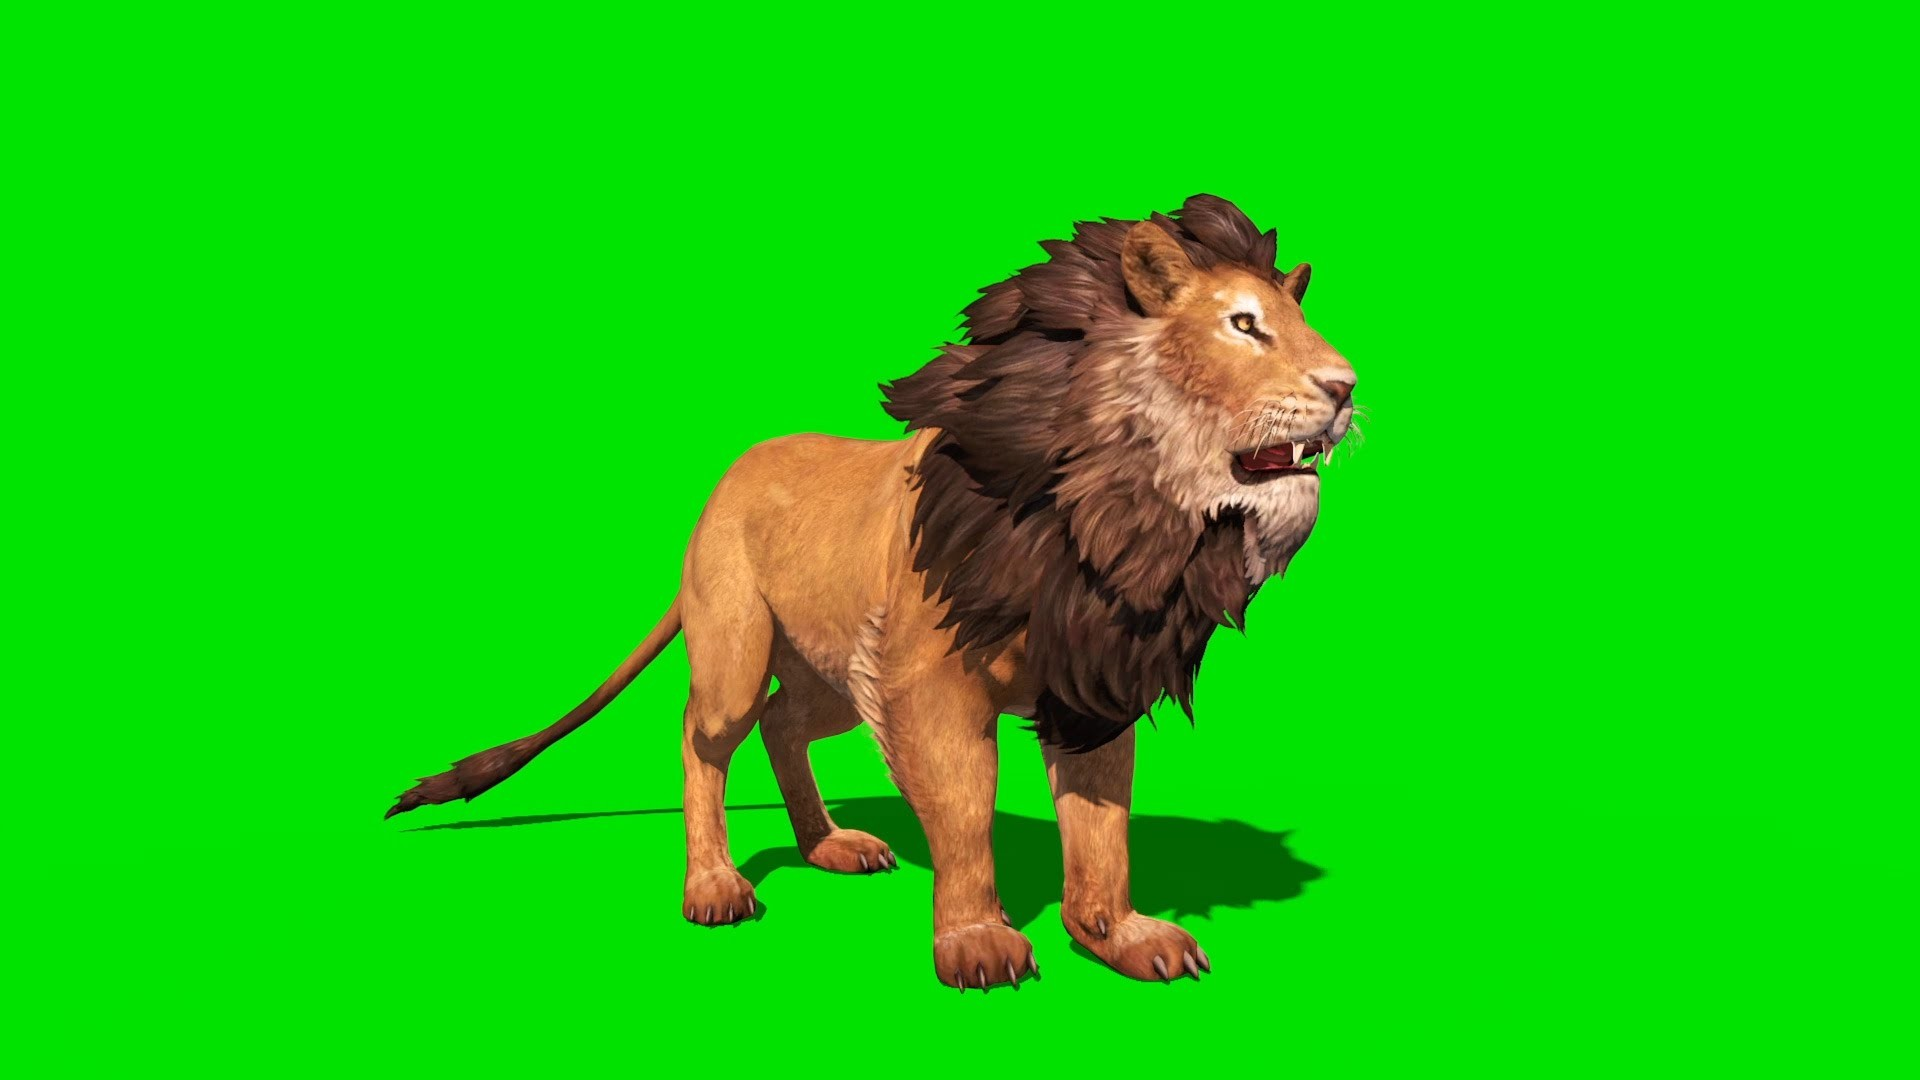 1920x1080 Green Screen Ferocious Lion Runs Attacks and Roars - Footage PixelBoom -  YouTube